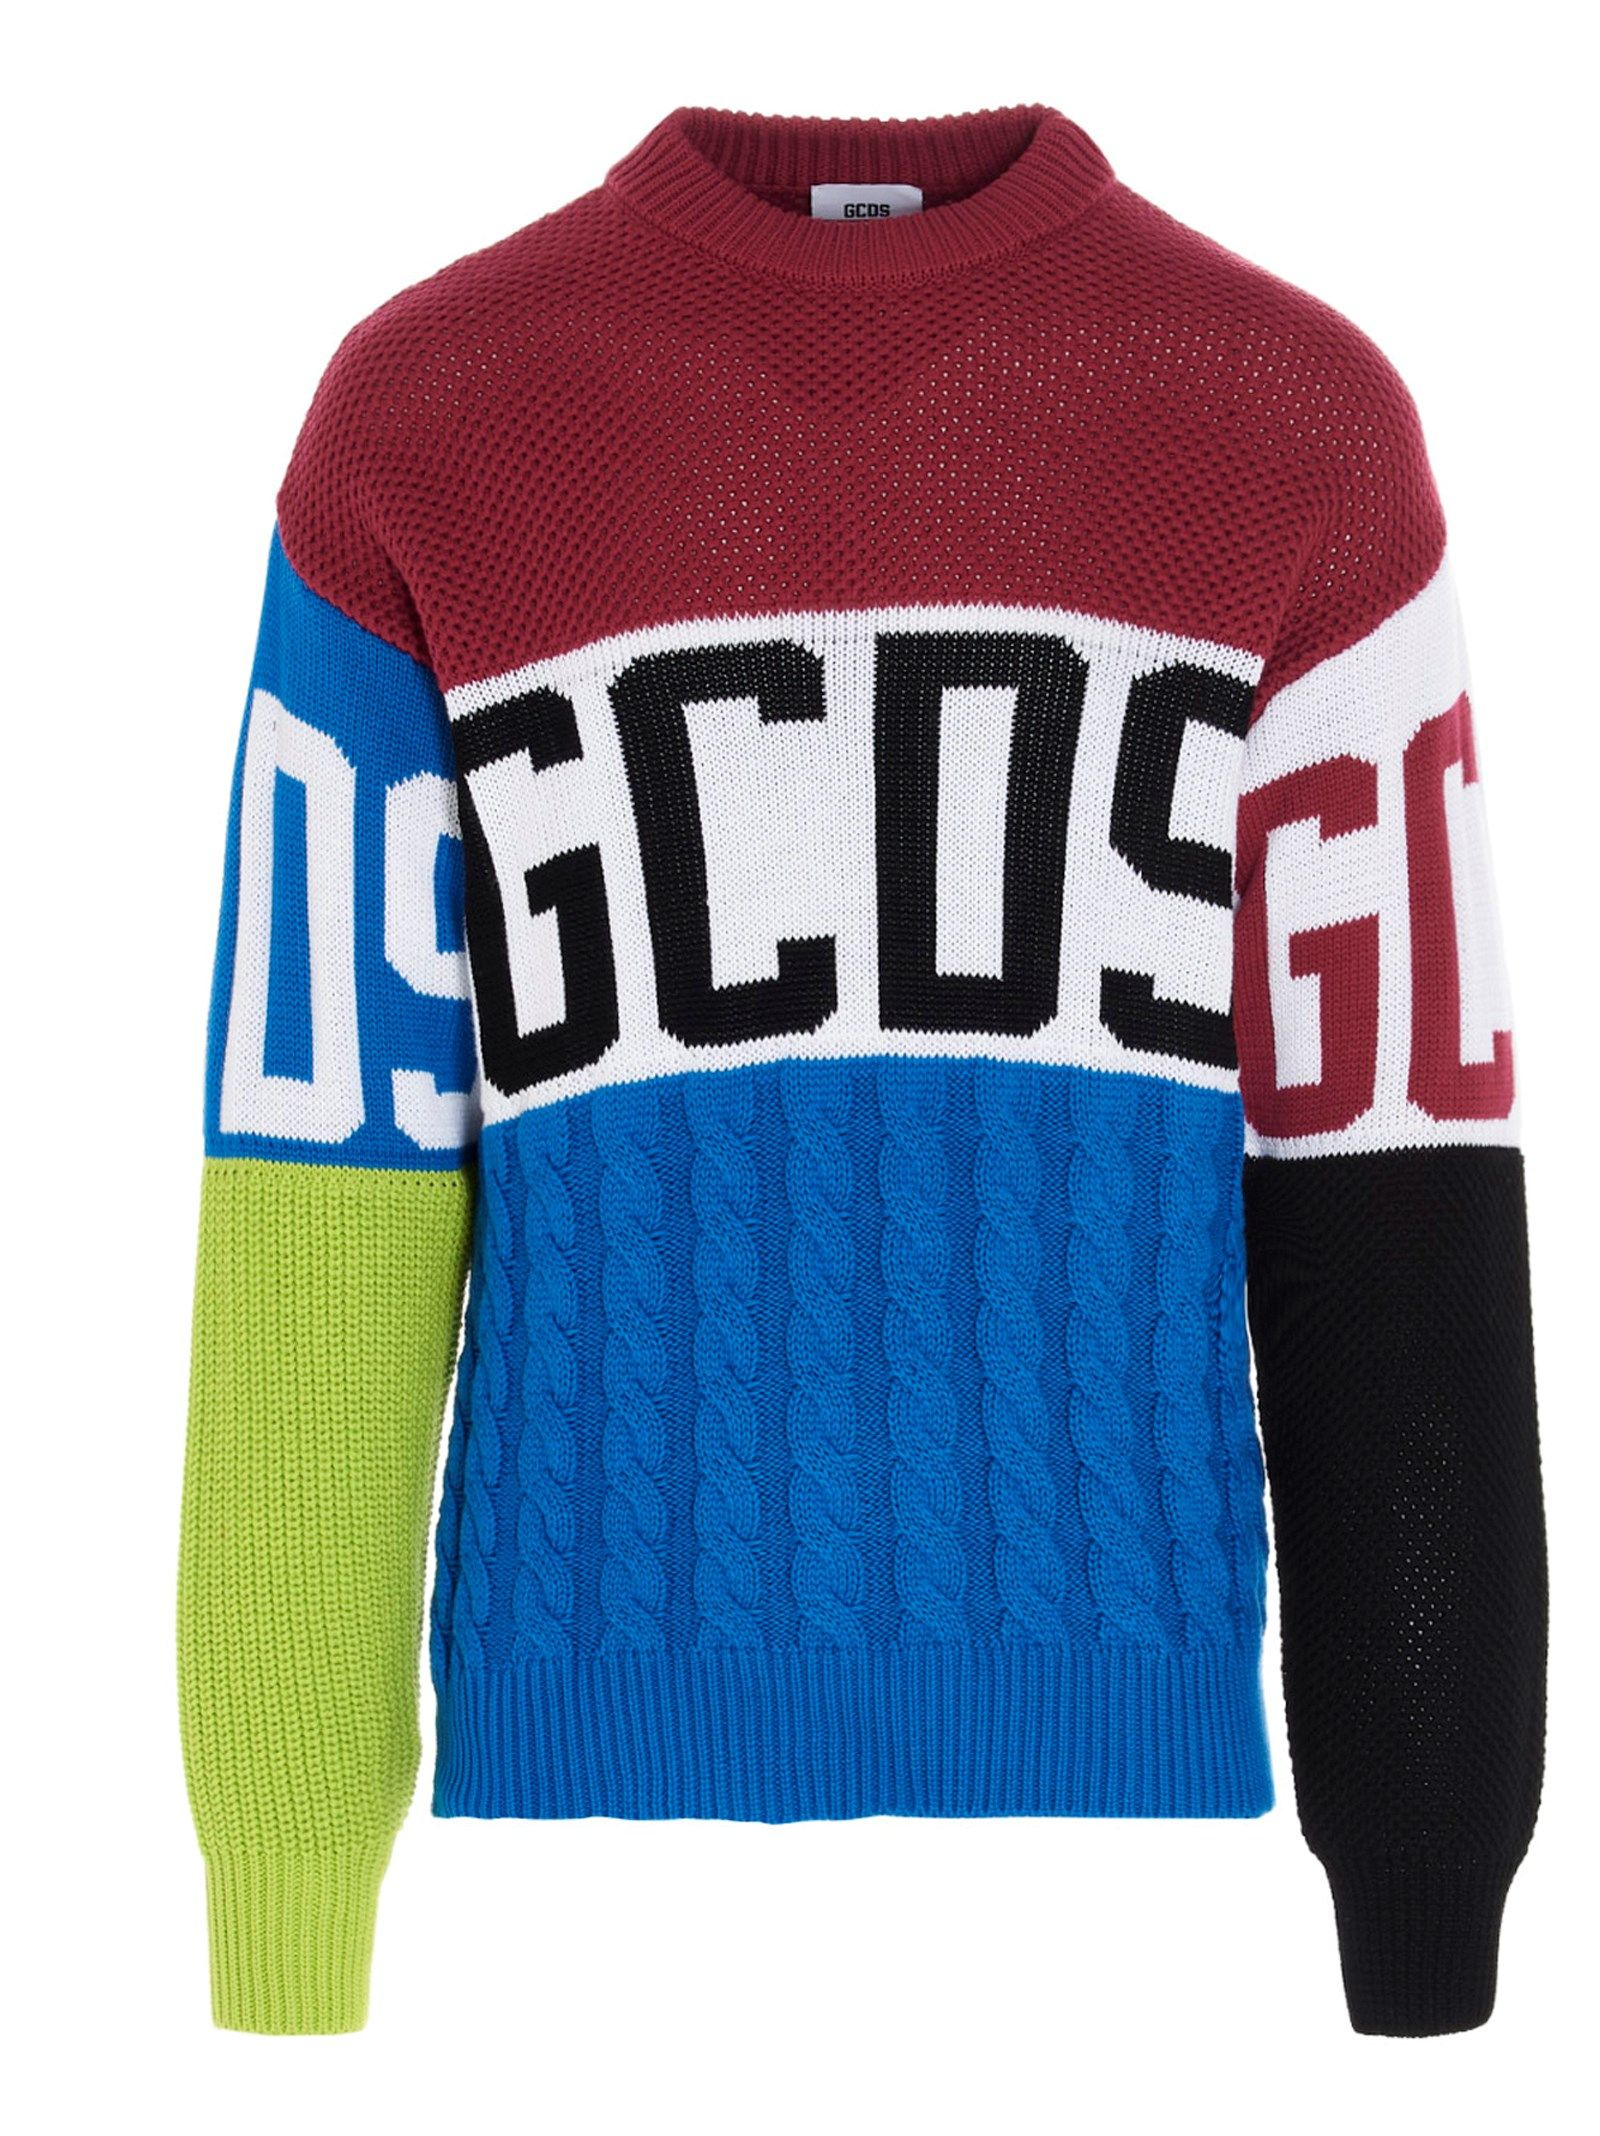 Gcds GCDS MEN'S MULTICOLOR COTTON SWEATER